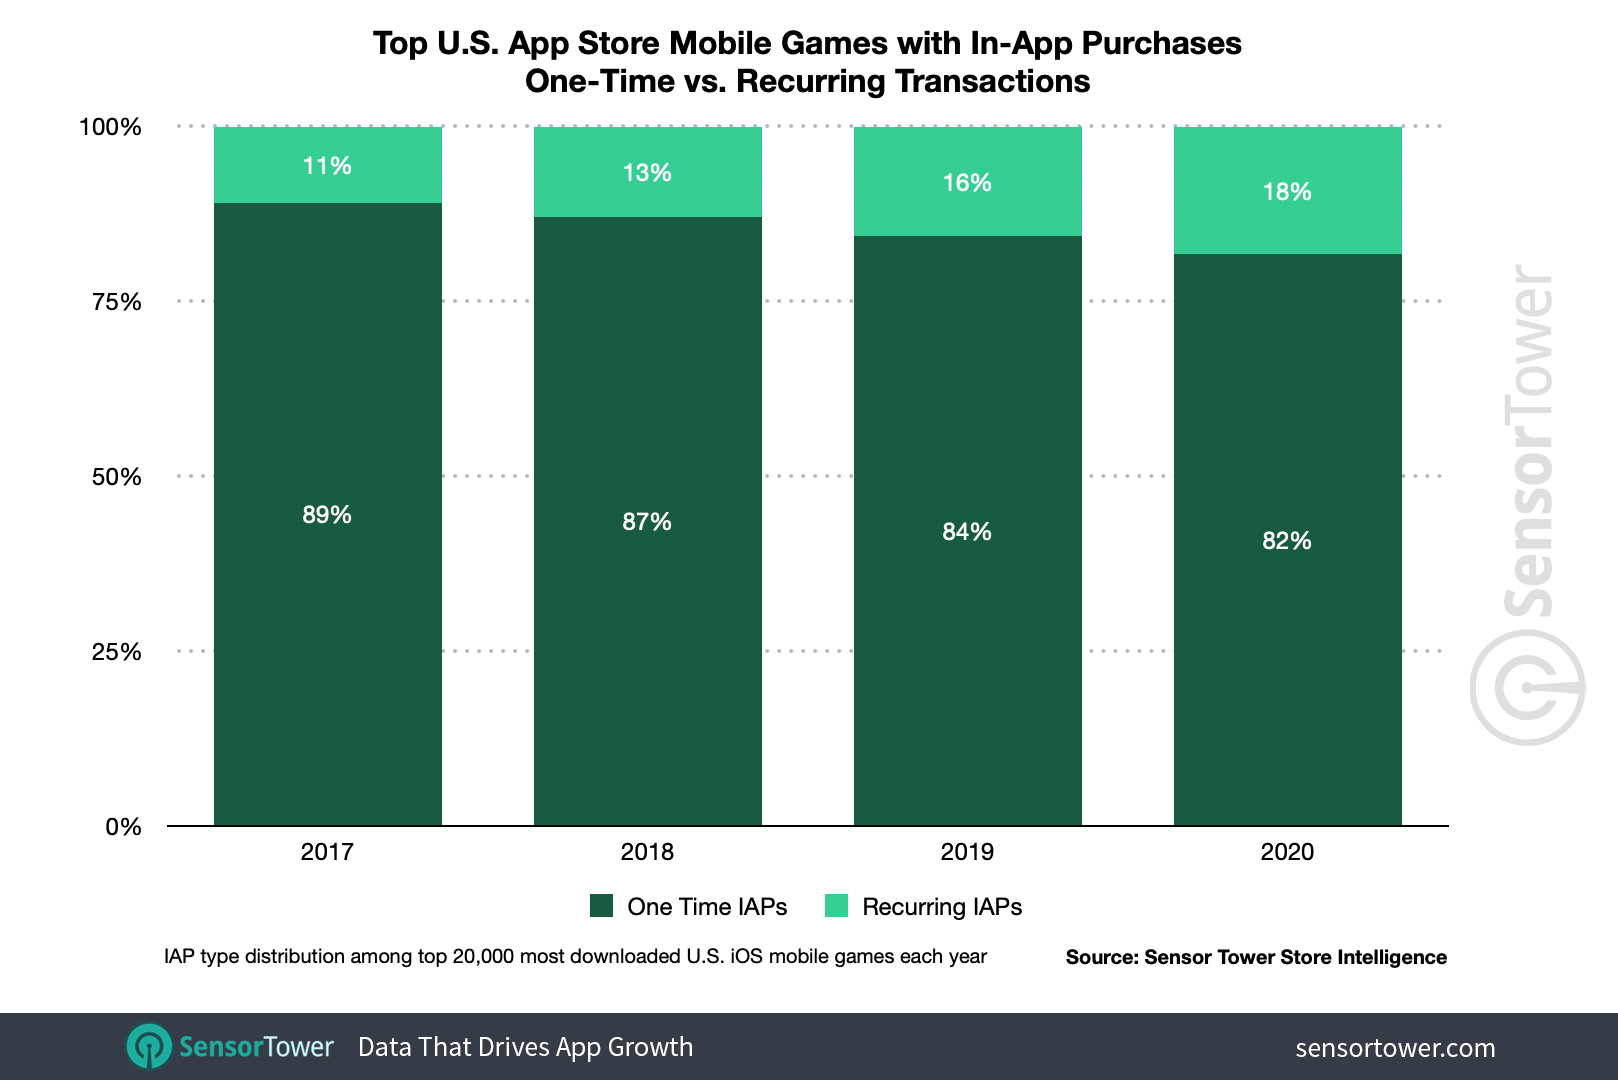 Subscriptions to major US App Store mobile games with in-app purchases increased to 18%